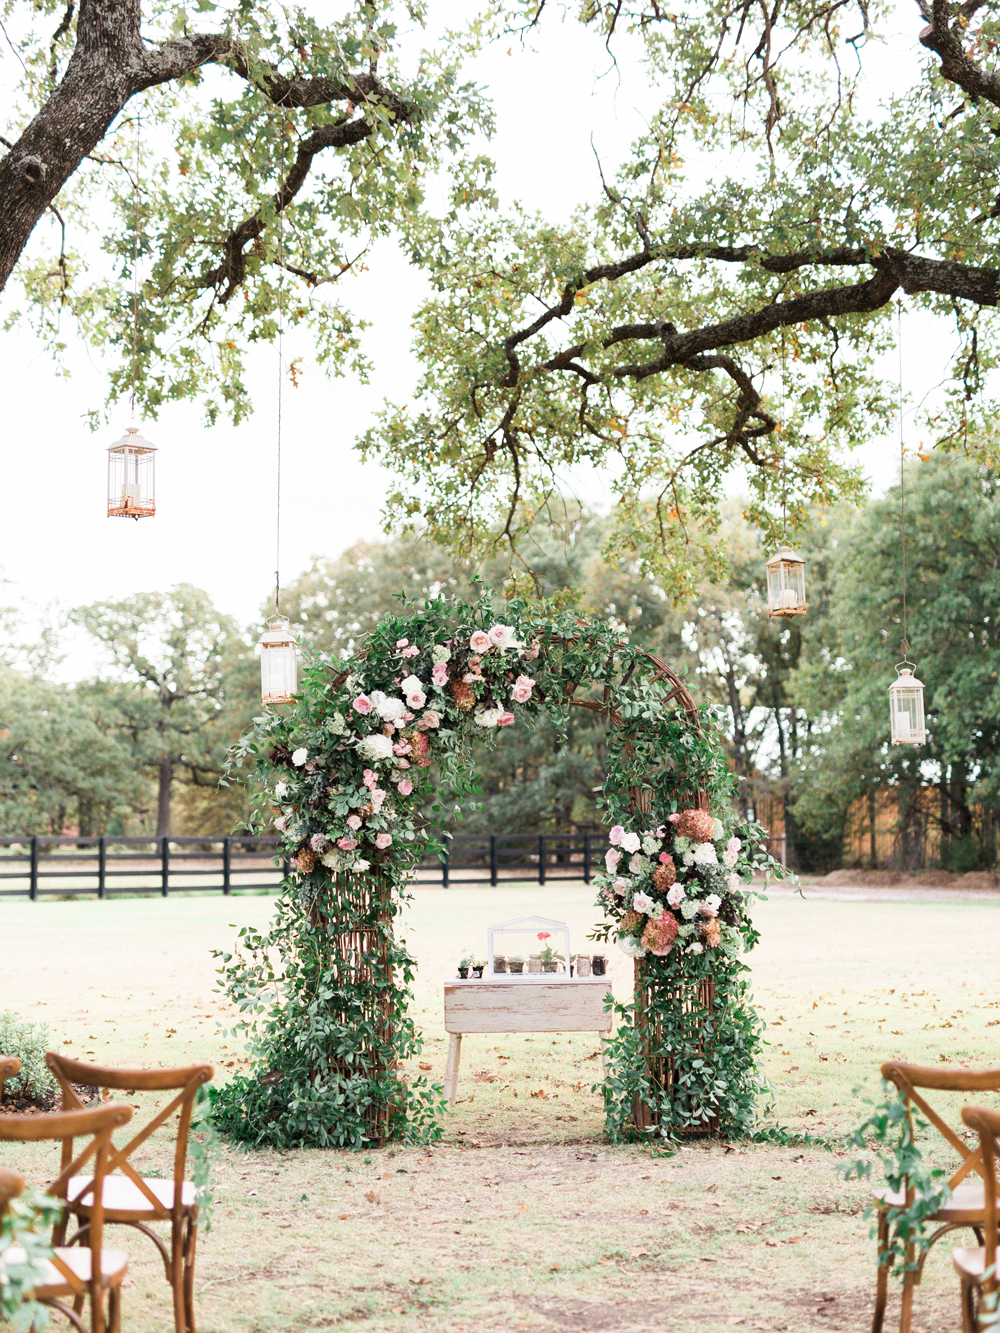 ceremony decor - photo by Elisabeth Carol Photography http://ruffledblog.com/picturesque-garden-wedding-at-white-sparrow-barn